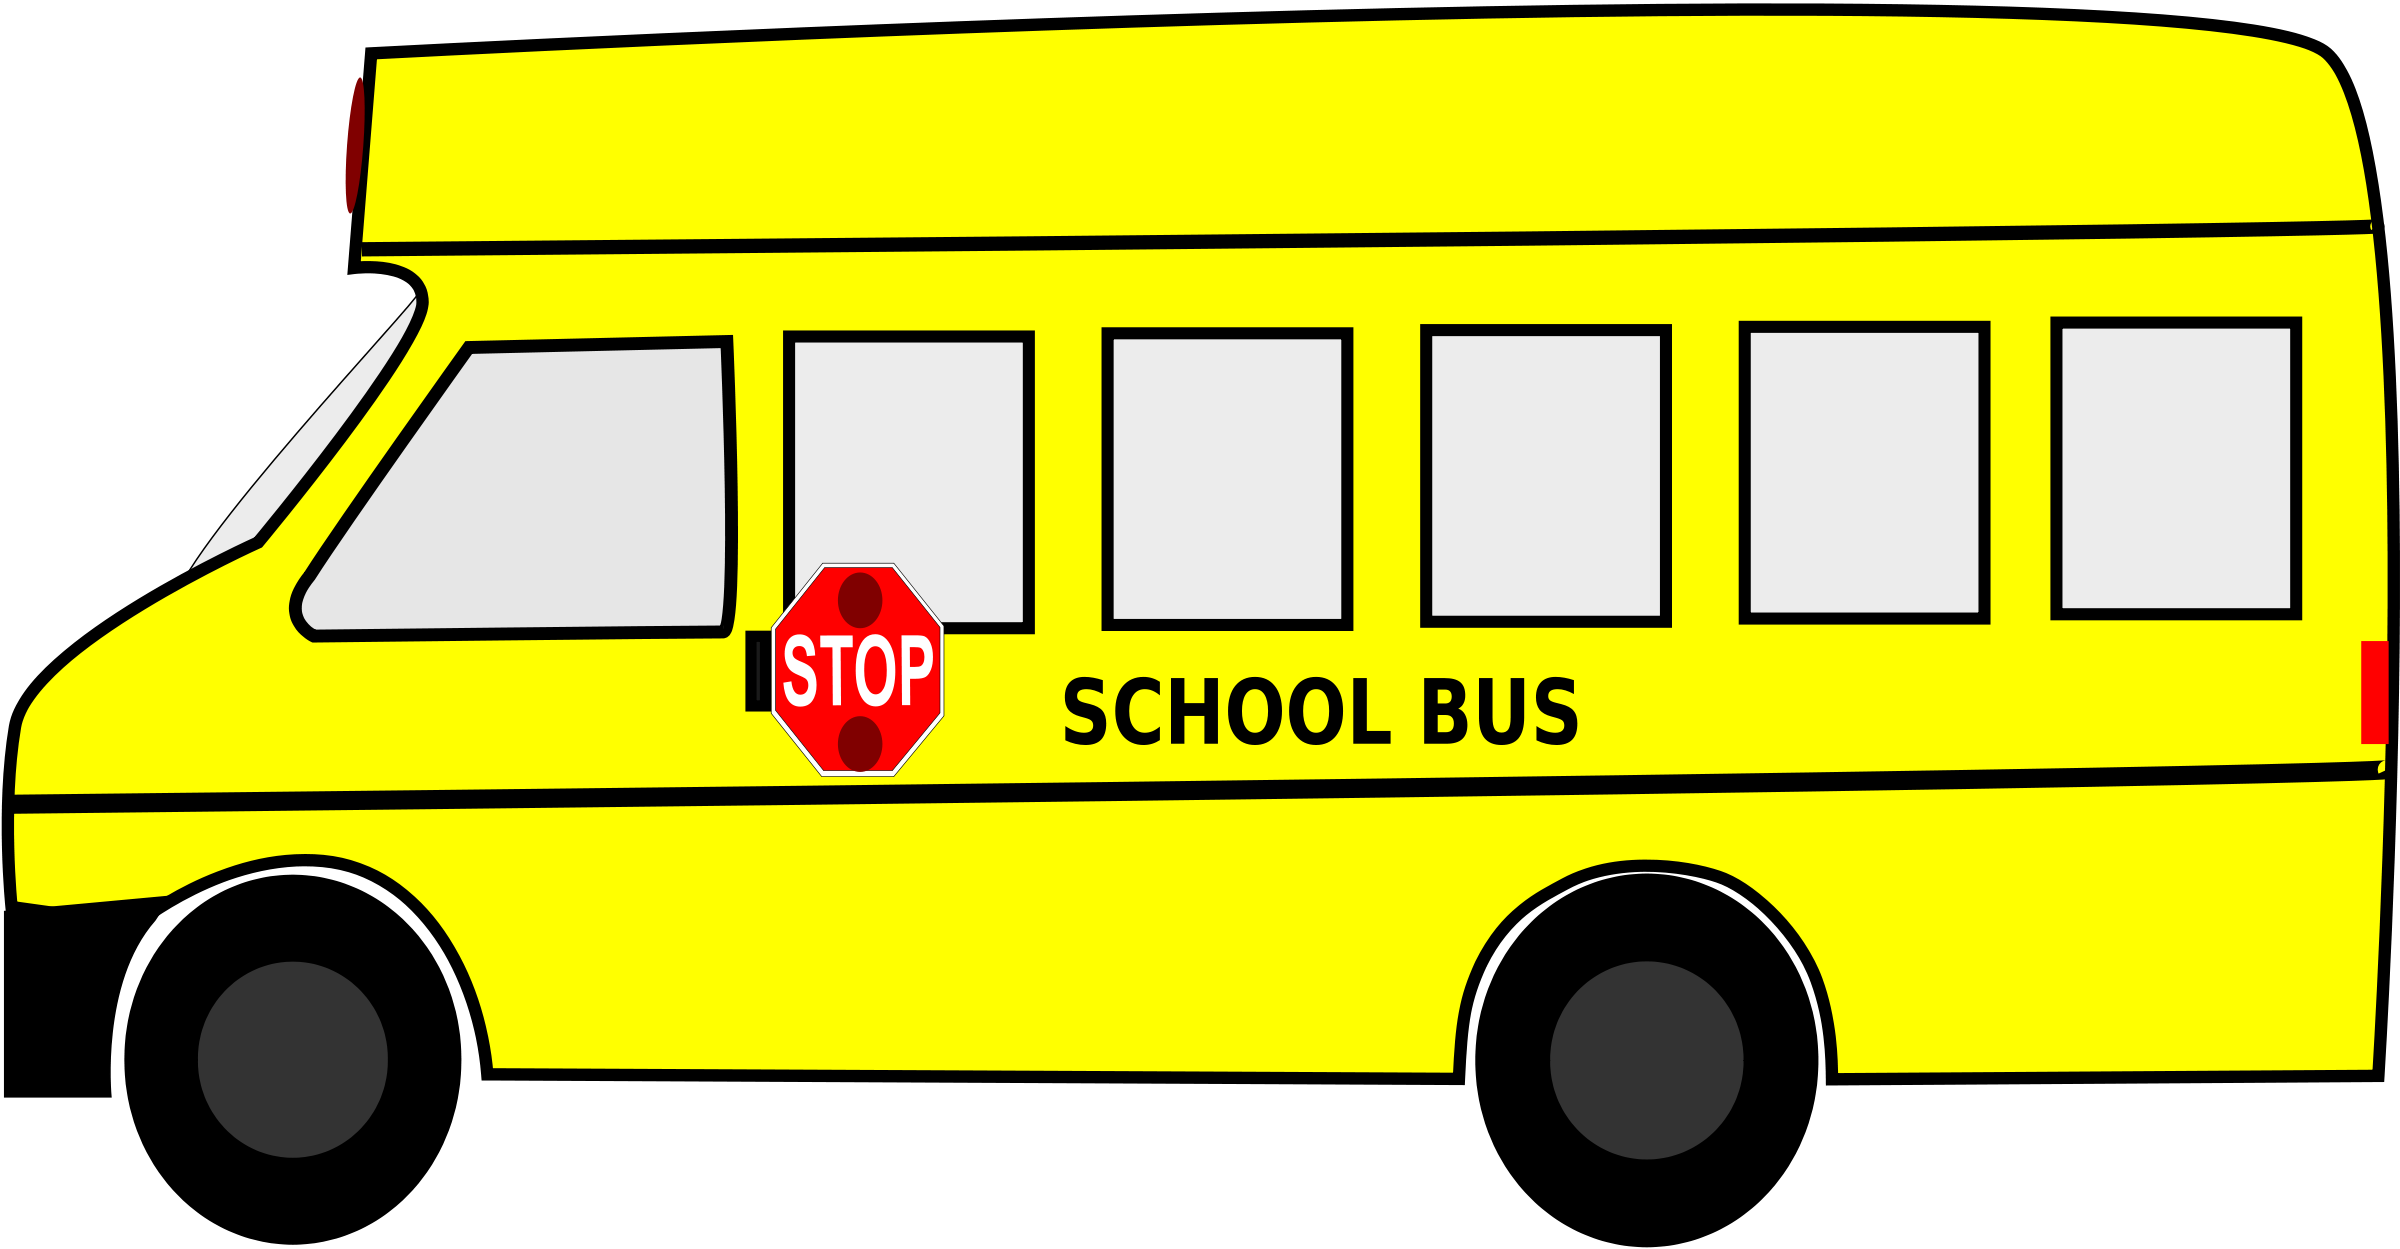 Of School Bus Clipart Bus 20clip 20art Schoolfreeware School Bus Png